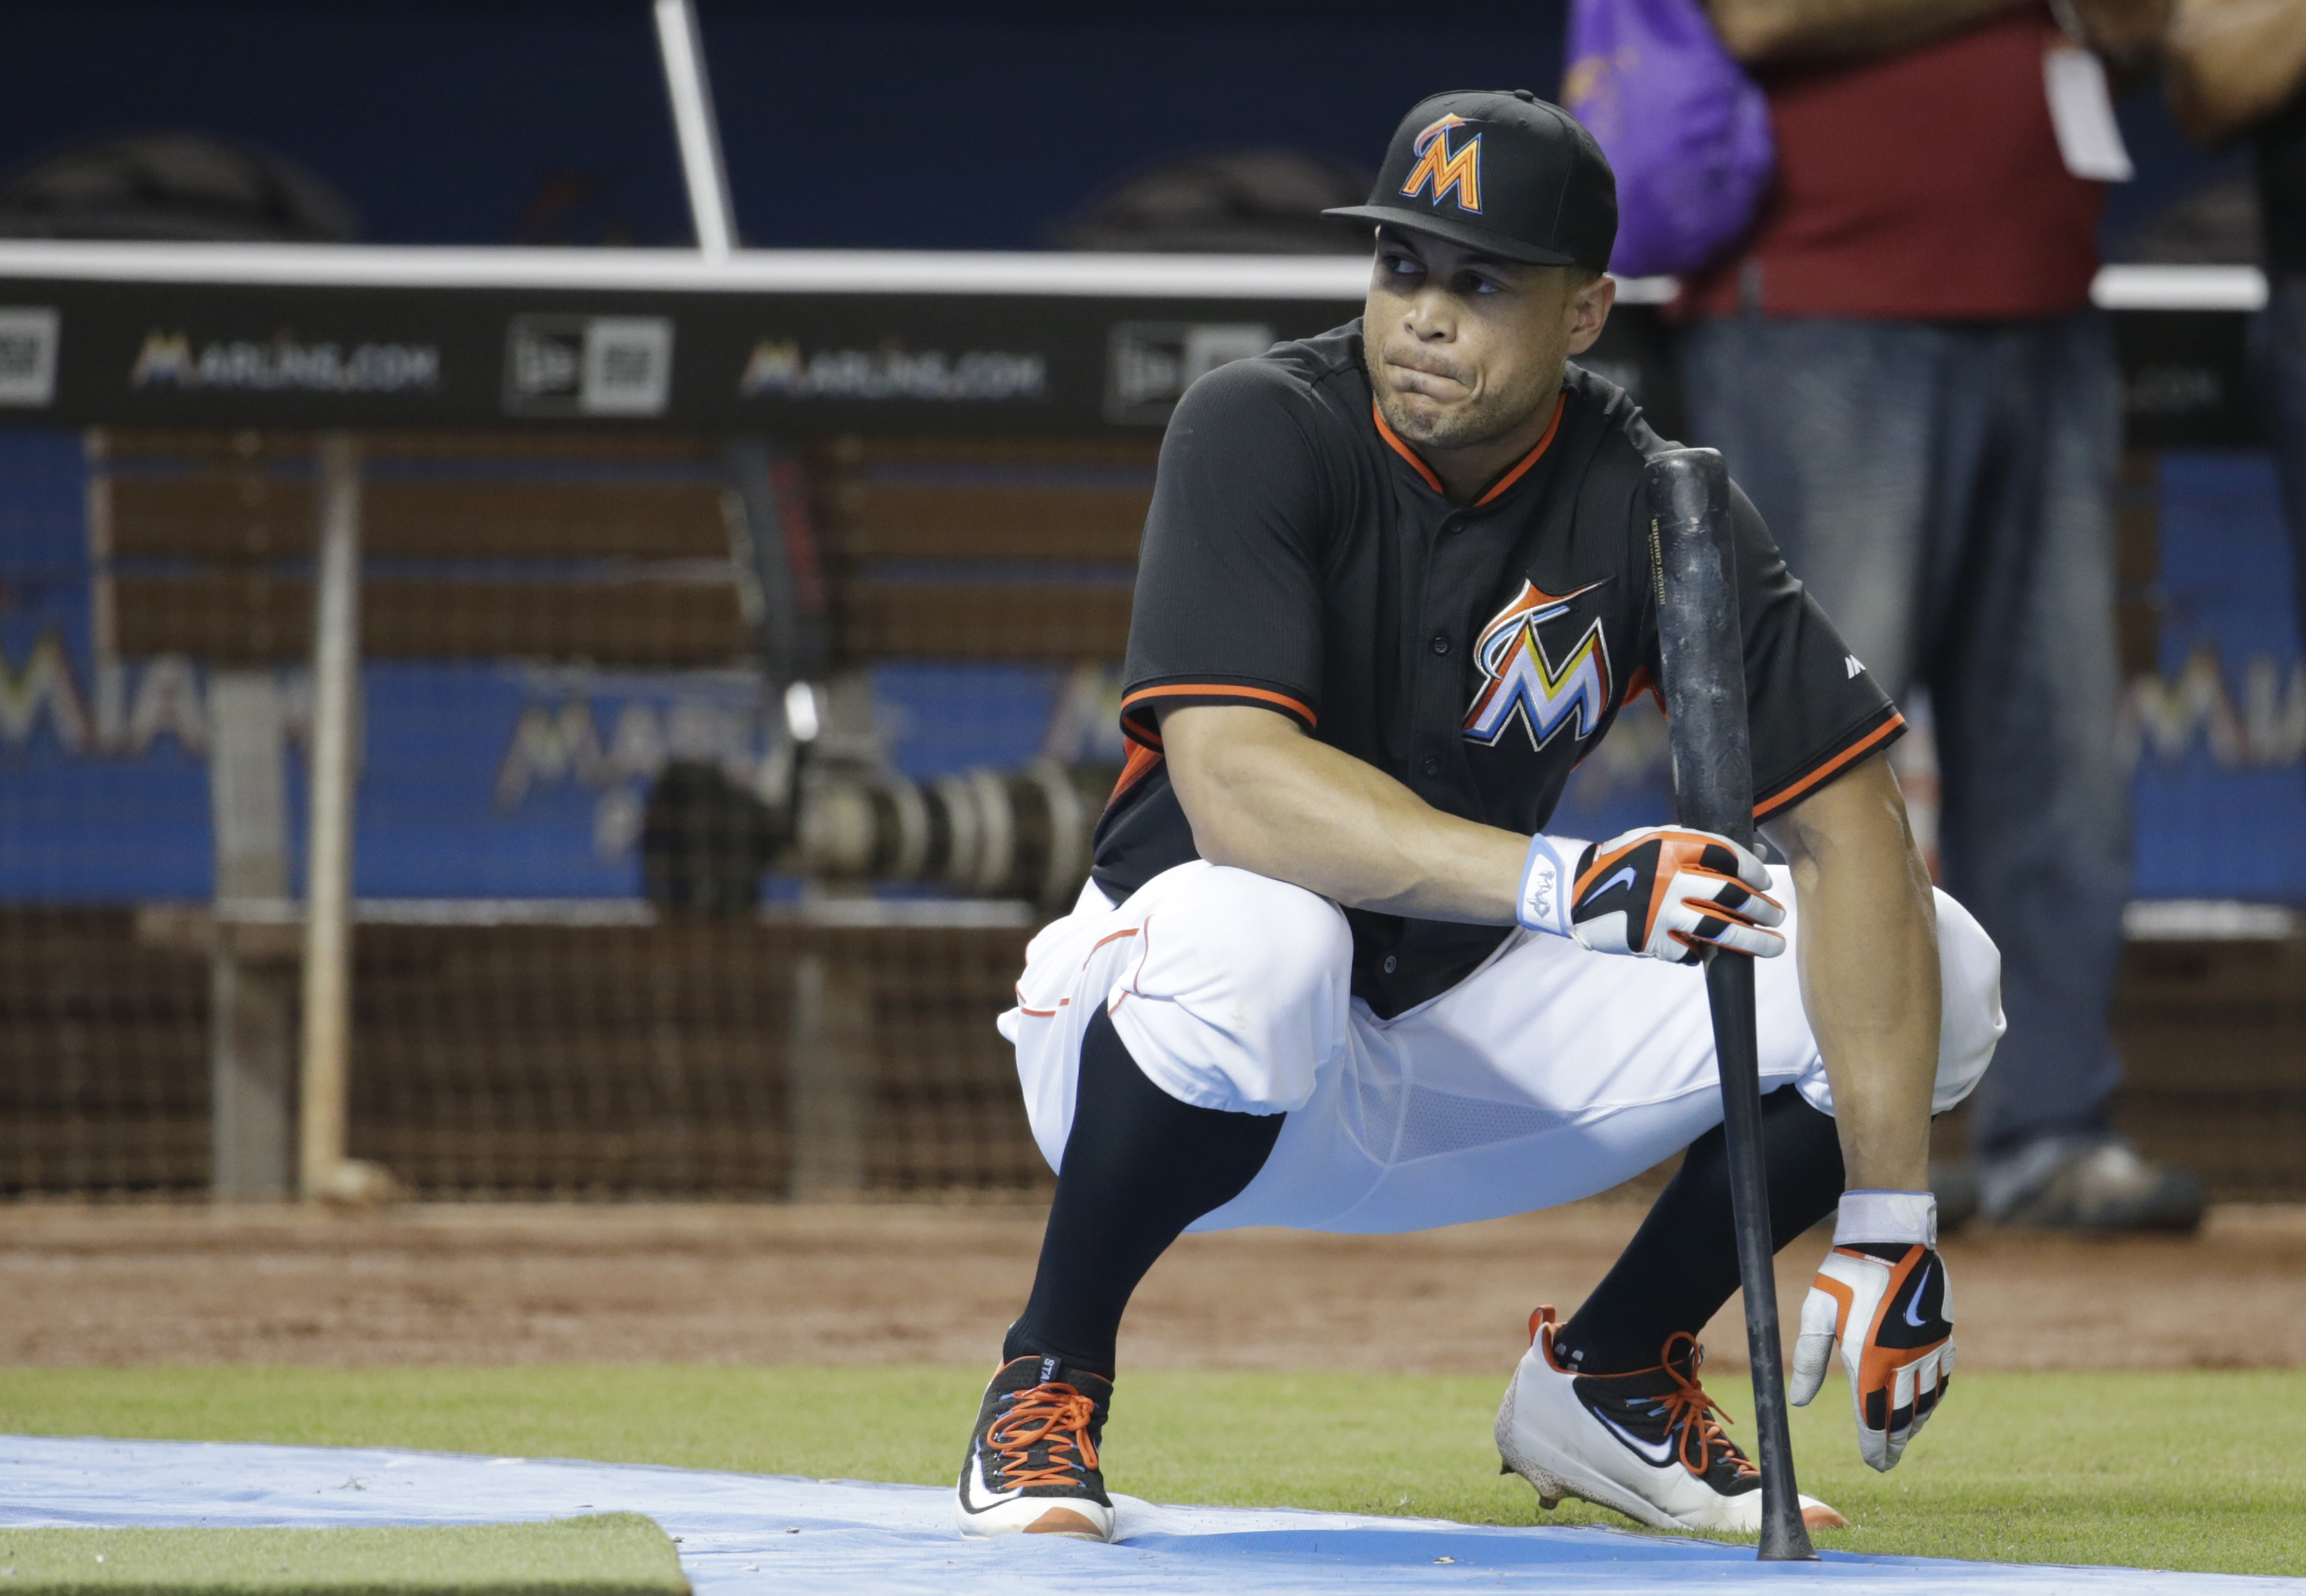 Miami Marlins' Giancarlo Stanton watches batting practice before a baseball game against the Philadelphia Phillies, Tuesday, Sept. 6, 2016, in Miami. The Marlins reinstated the Home Run Derby champion from the disabled list Tuesday, barely three weeks aft